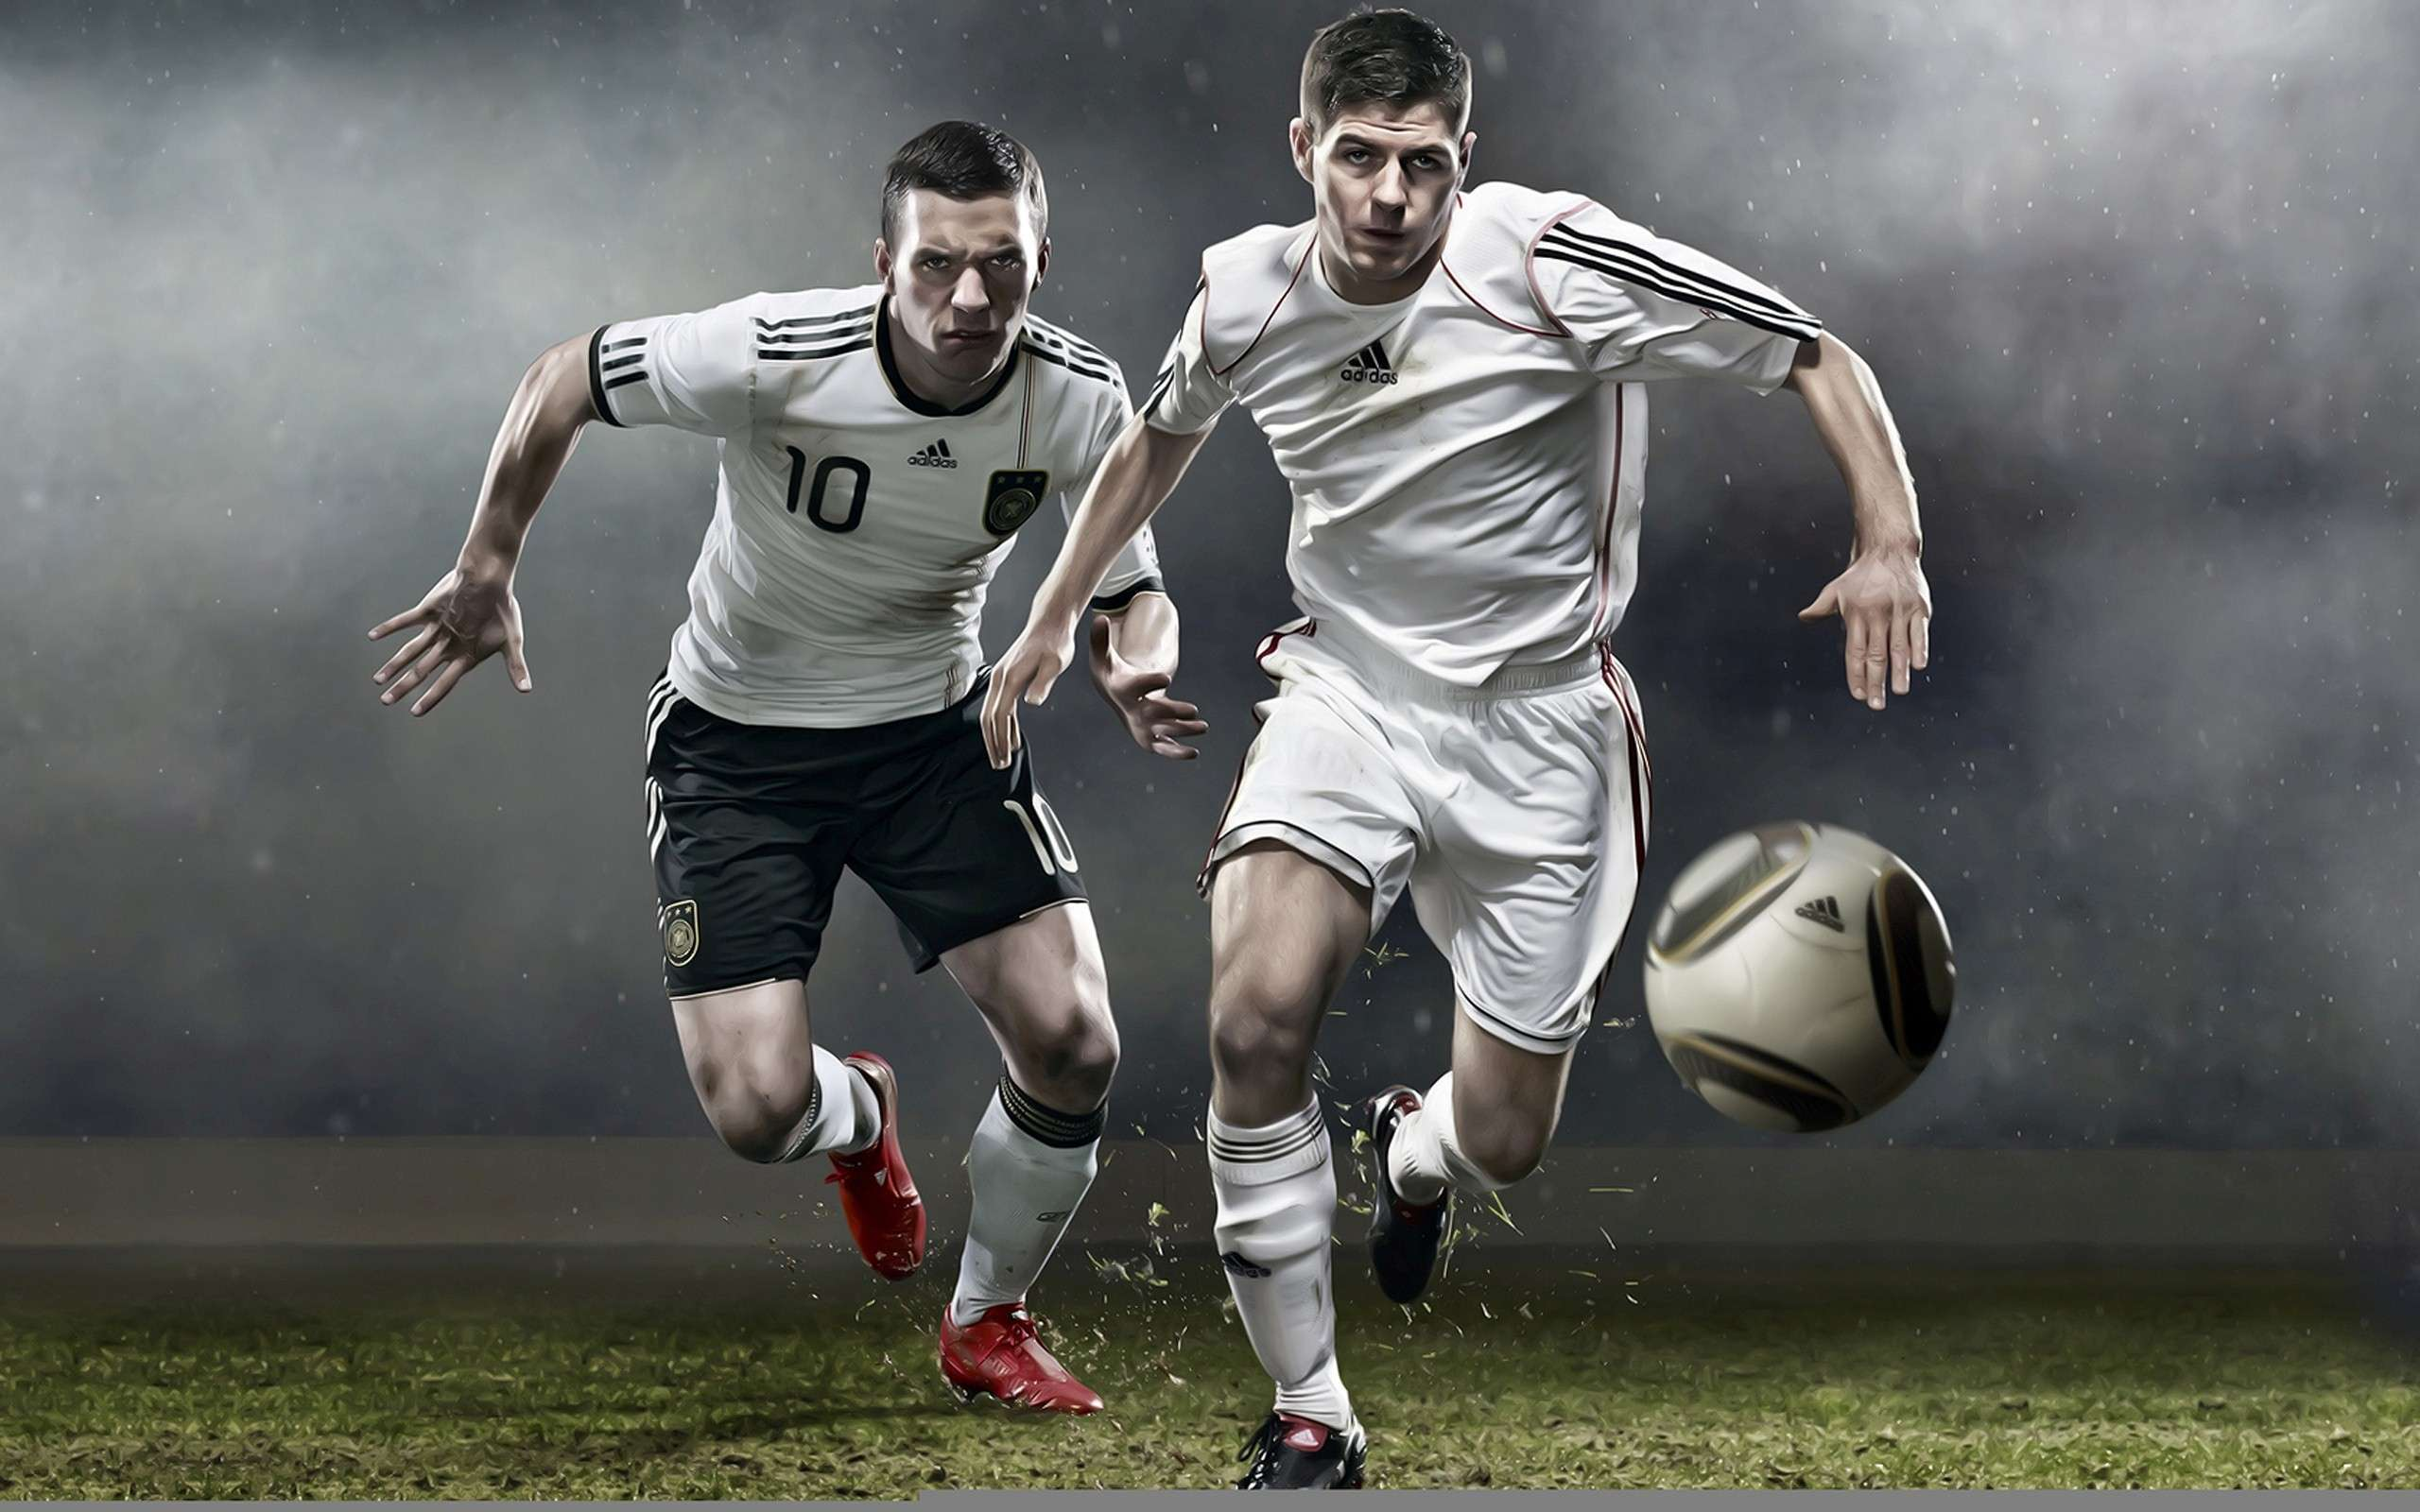 3d-football-players-play-game-hd-wallpaper